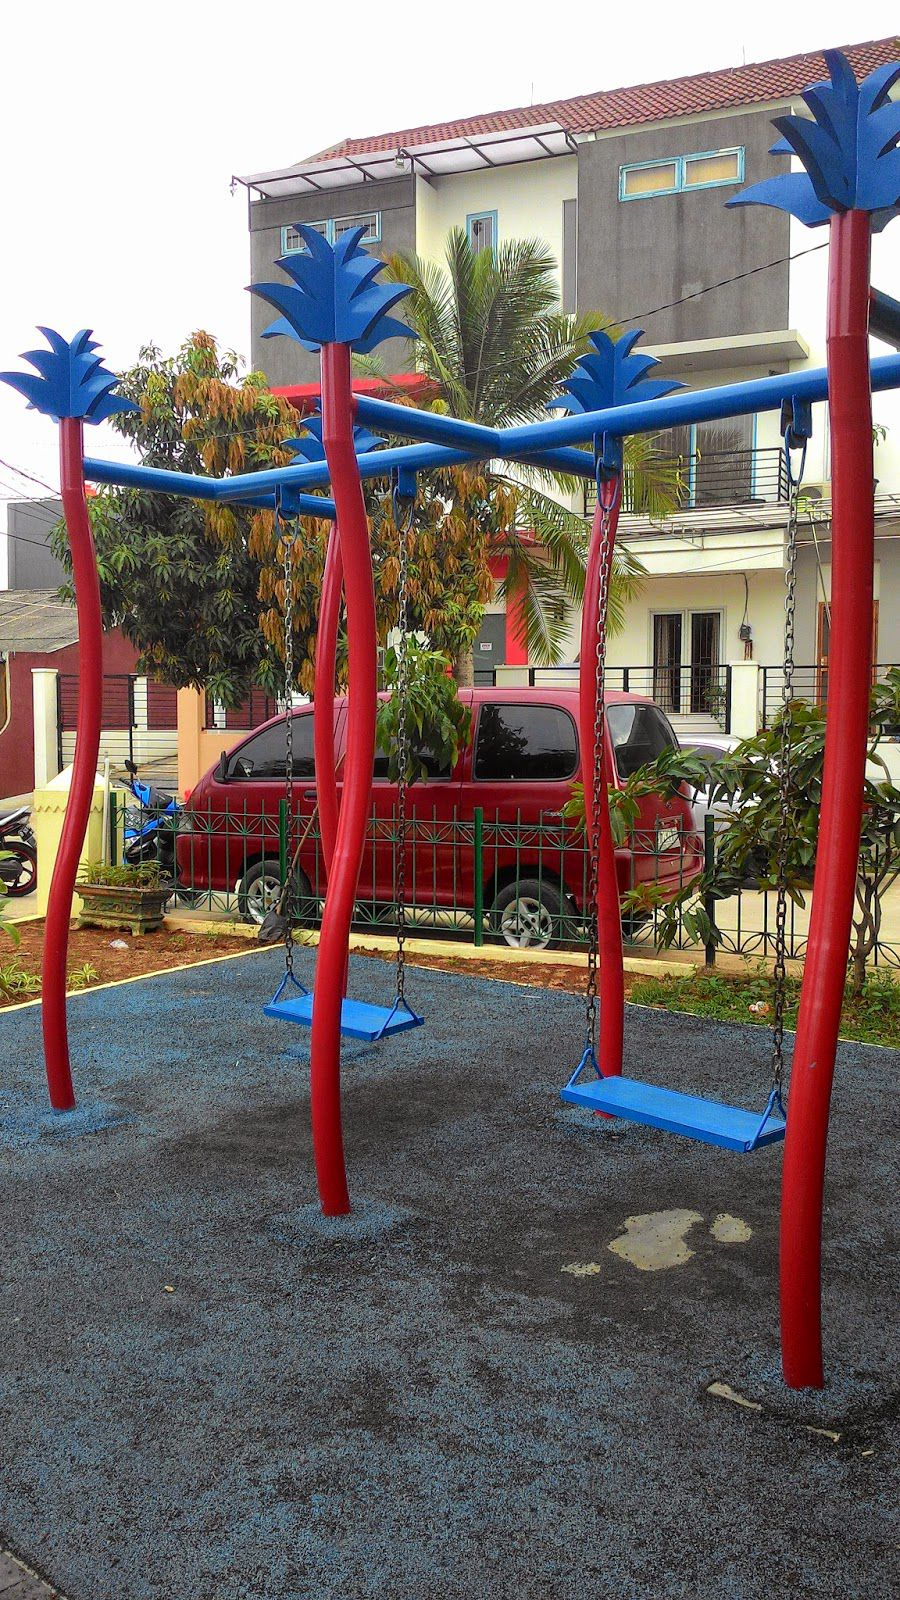 Unique Foundation Swings used Two Type Color in Garden For Kids